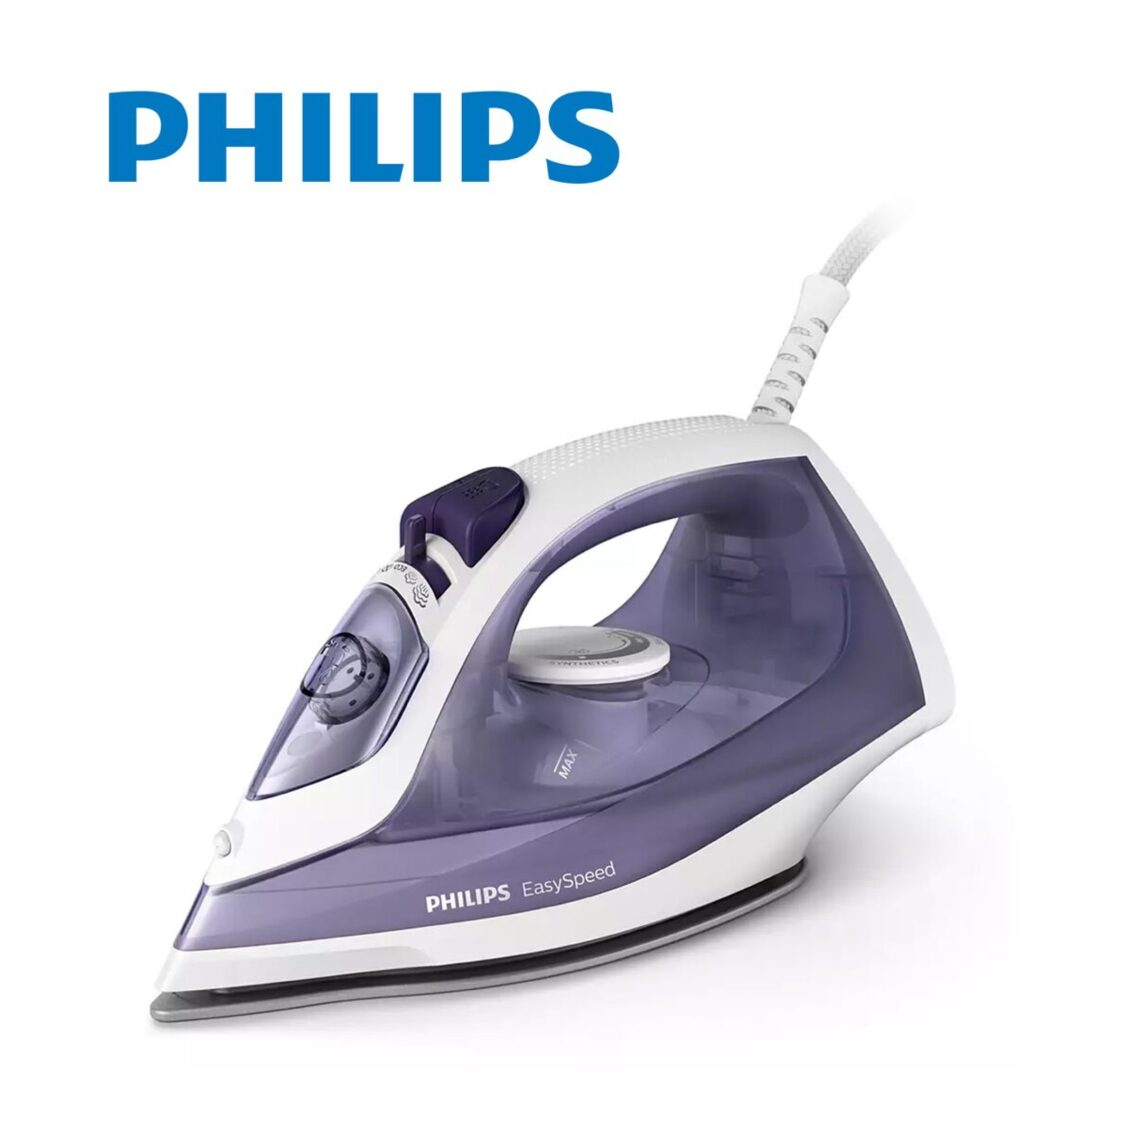 Philips Easyspeed 2000W Steam Iron With Ceramic Soleplate GC175236